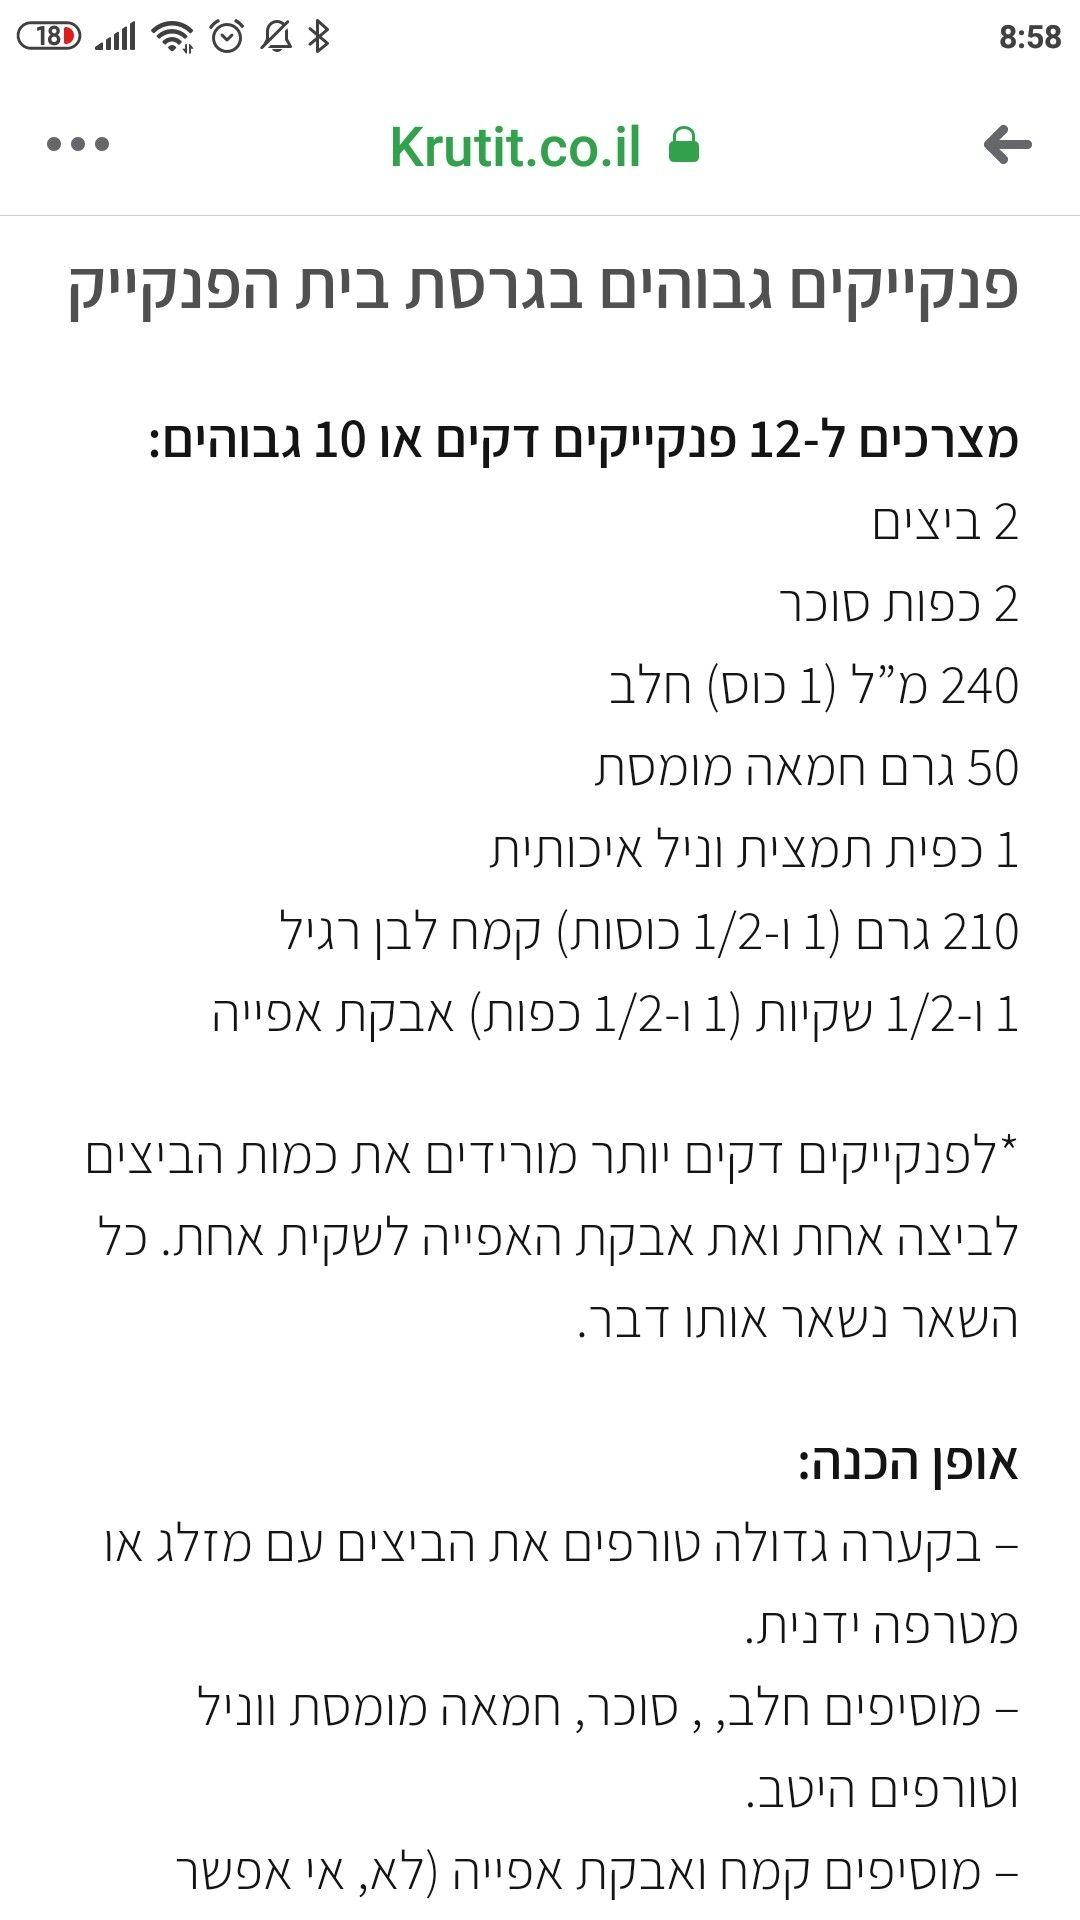 Pin by liat on מתוק in 2020 Food, 10 things